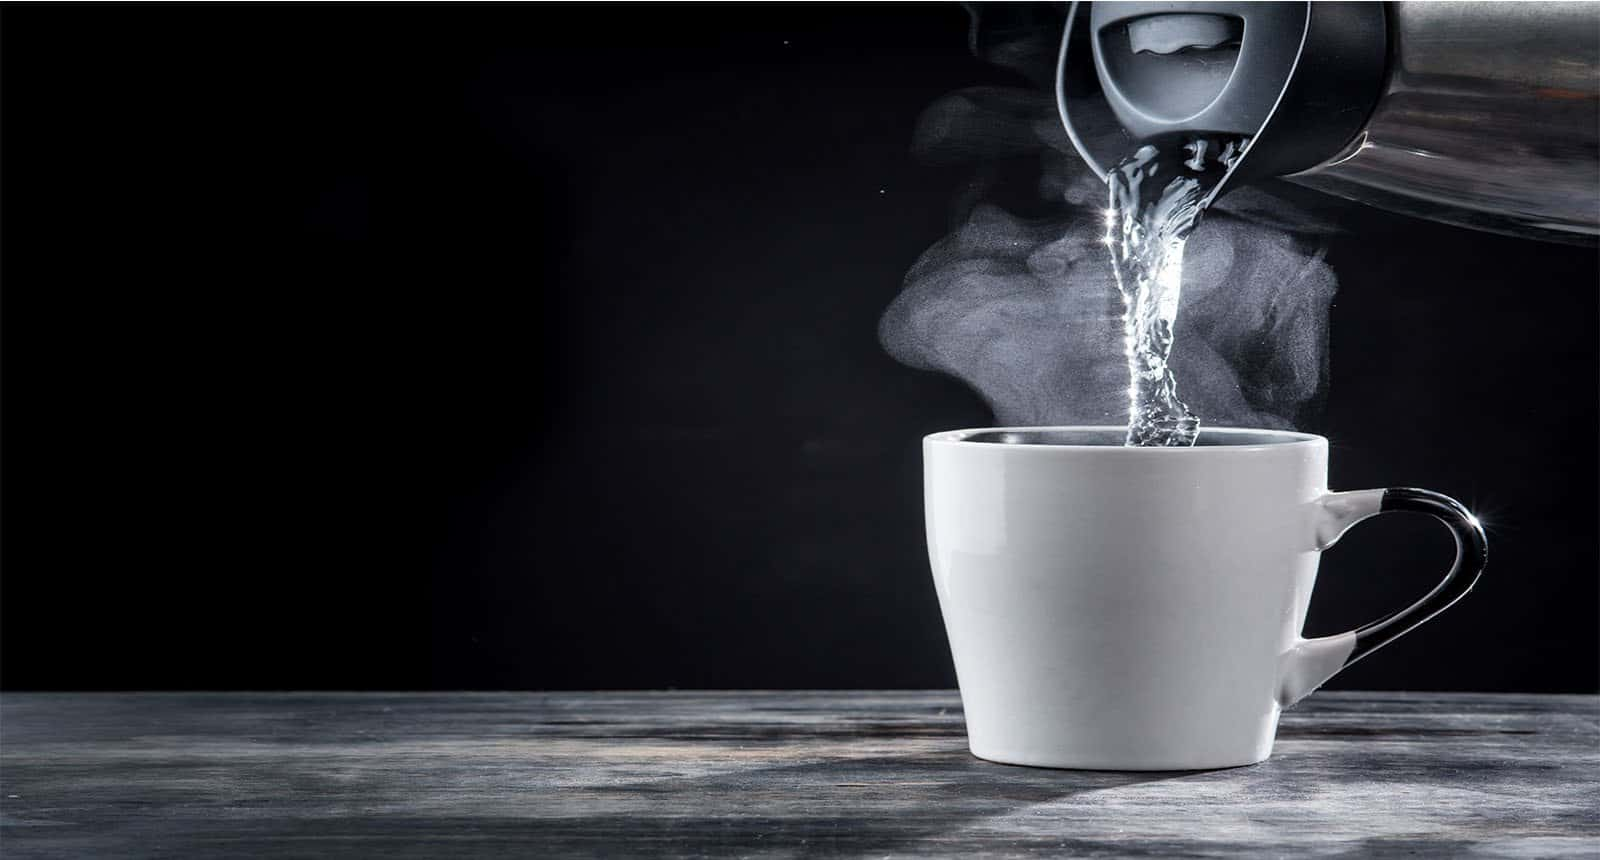 Pouring Hot Water